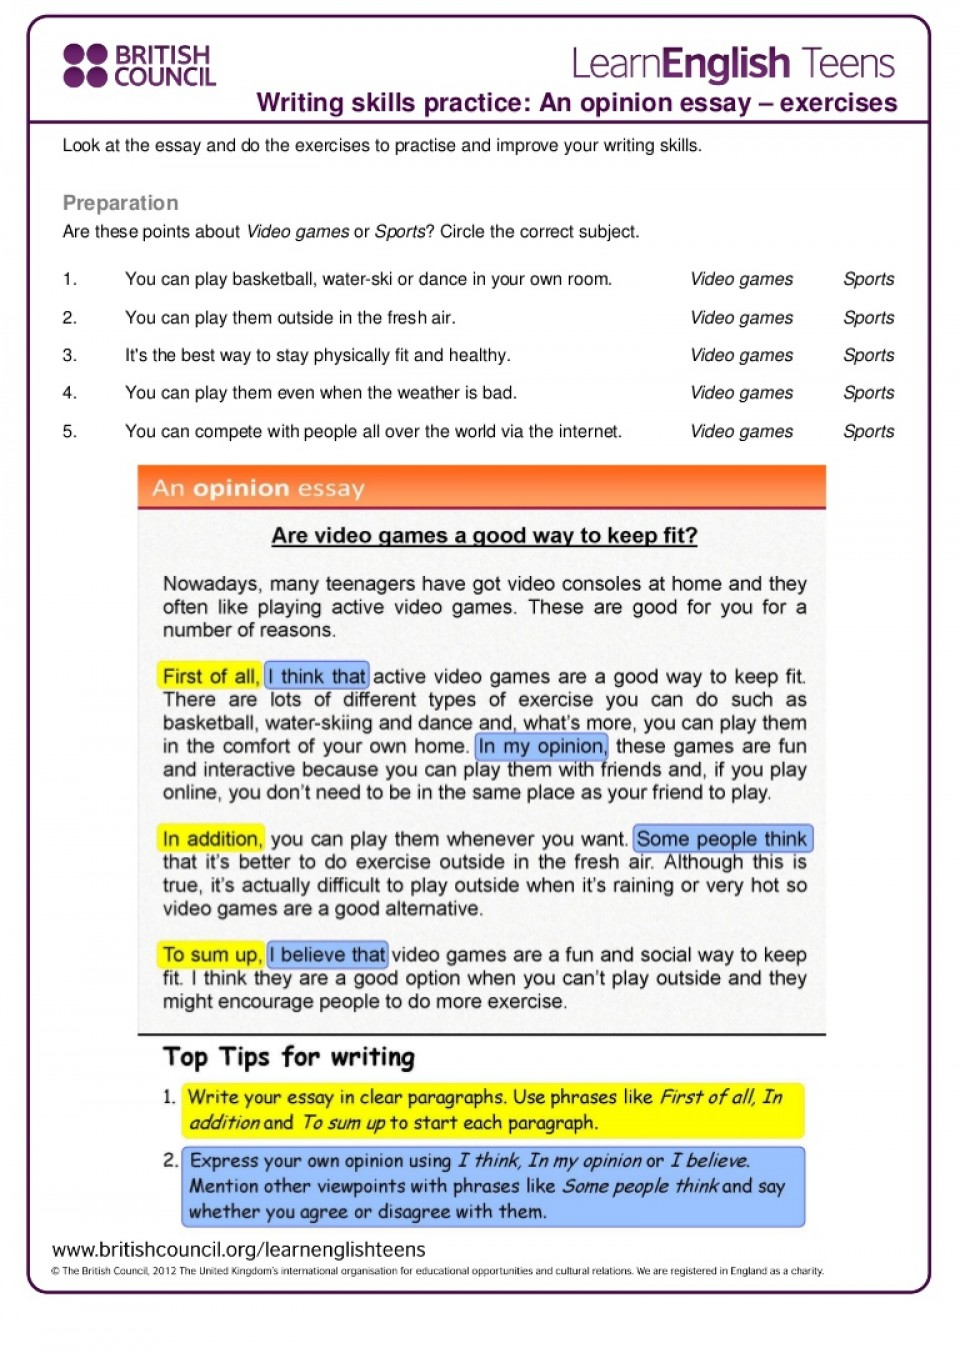 009 Writing Skills Essay Online Ielts Courses Podcast Jc Economics How To Write An Opinion 4th Grade Anopinionessay Exercises Thumbn Unbelievable Conclusion On A Book Video 960